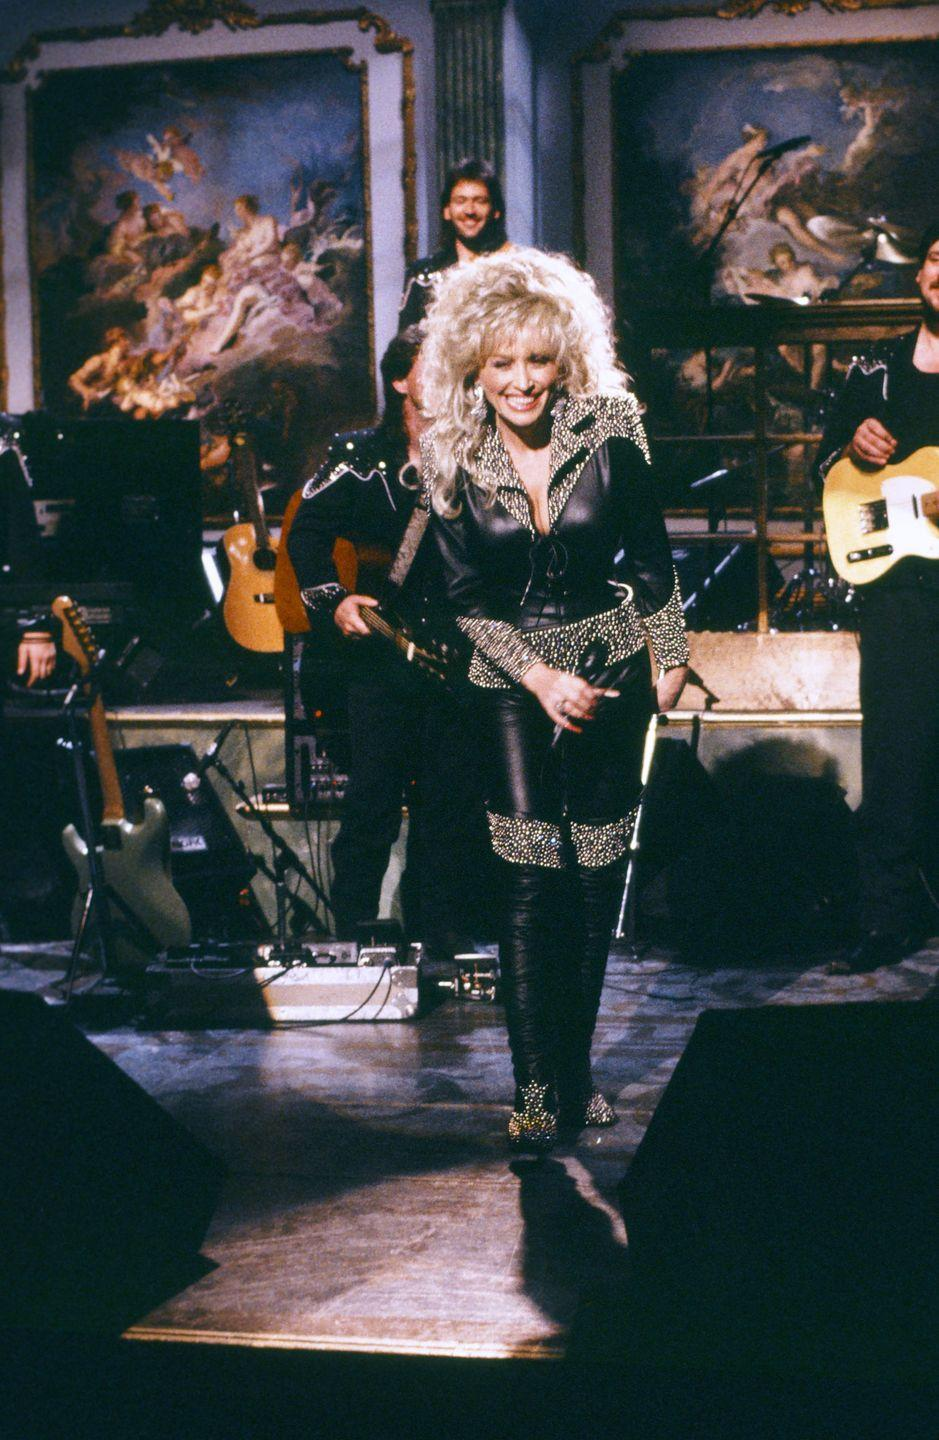 <p>Parton performs on <em>SNL </em>in a sleek, all-leather get-up. </p>